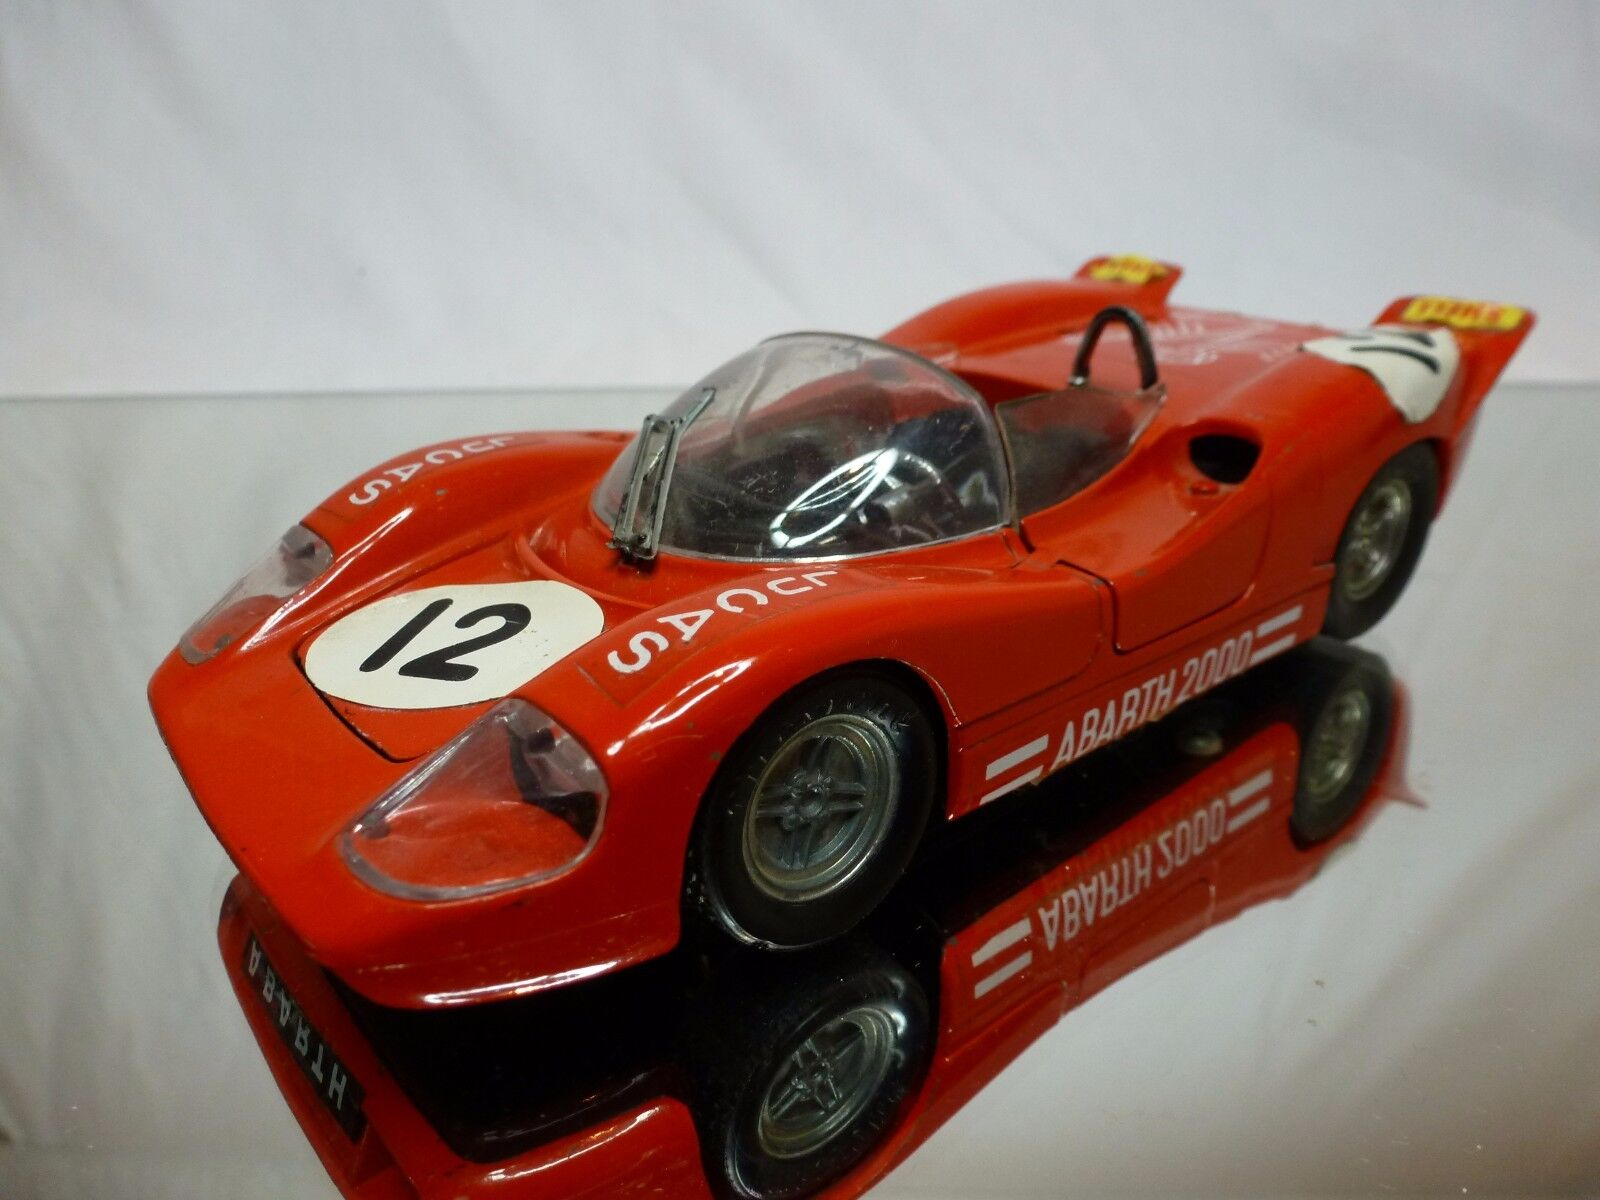 POLITOYS M 584 ABARTH 2000 - LUCAS rosso 1 25  - GOOD CONDITION (FIAT)